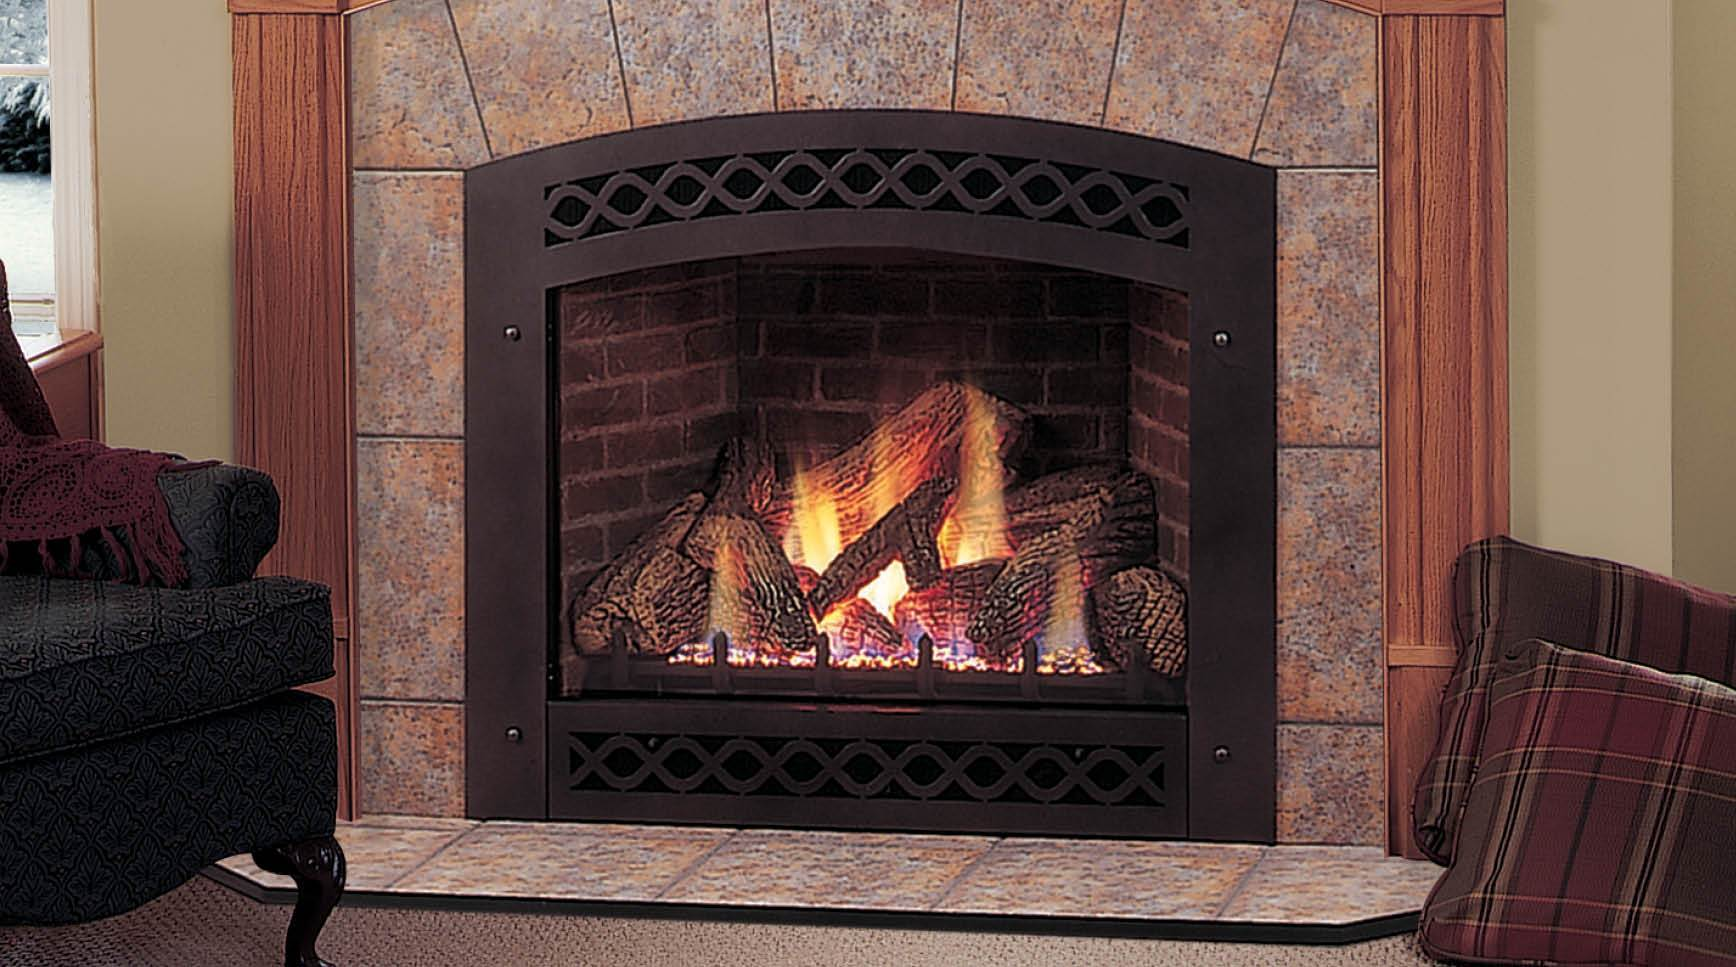 Gas Fireplace Santa Rosa Gas Fireplace Insert